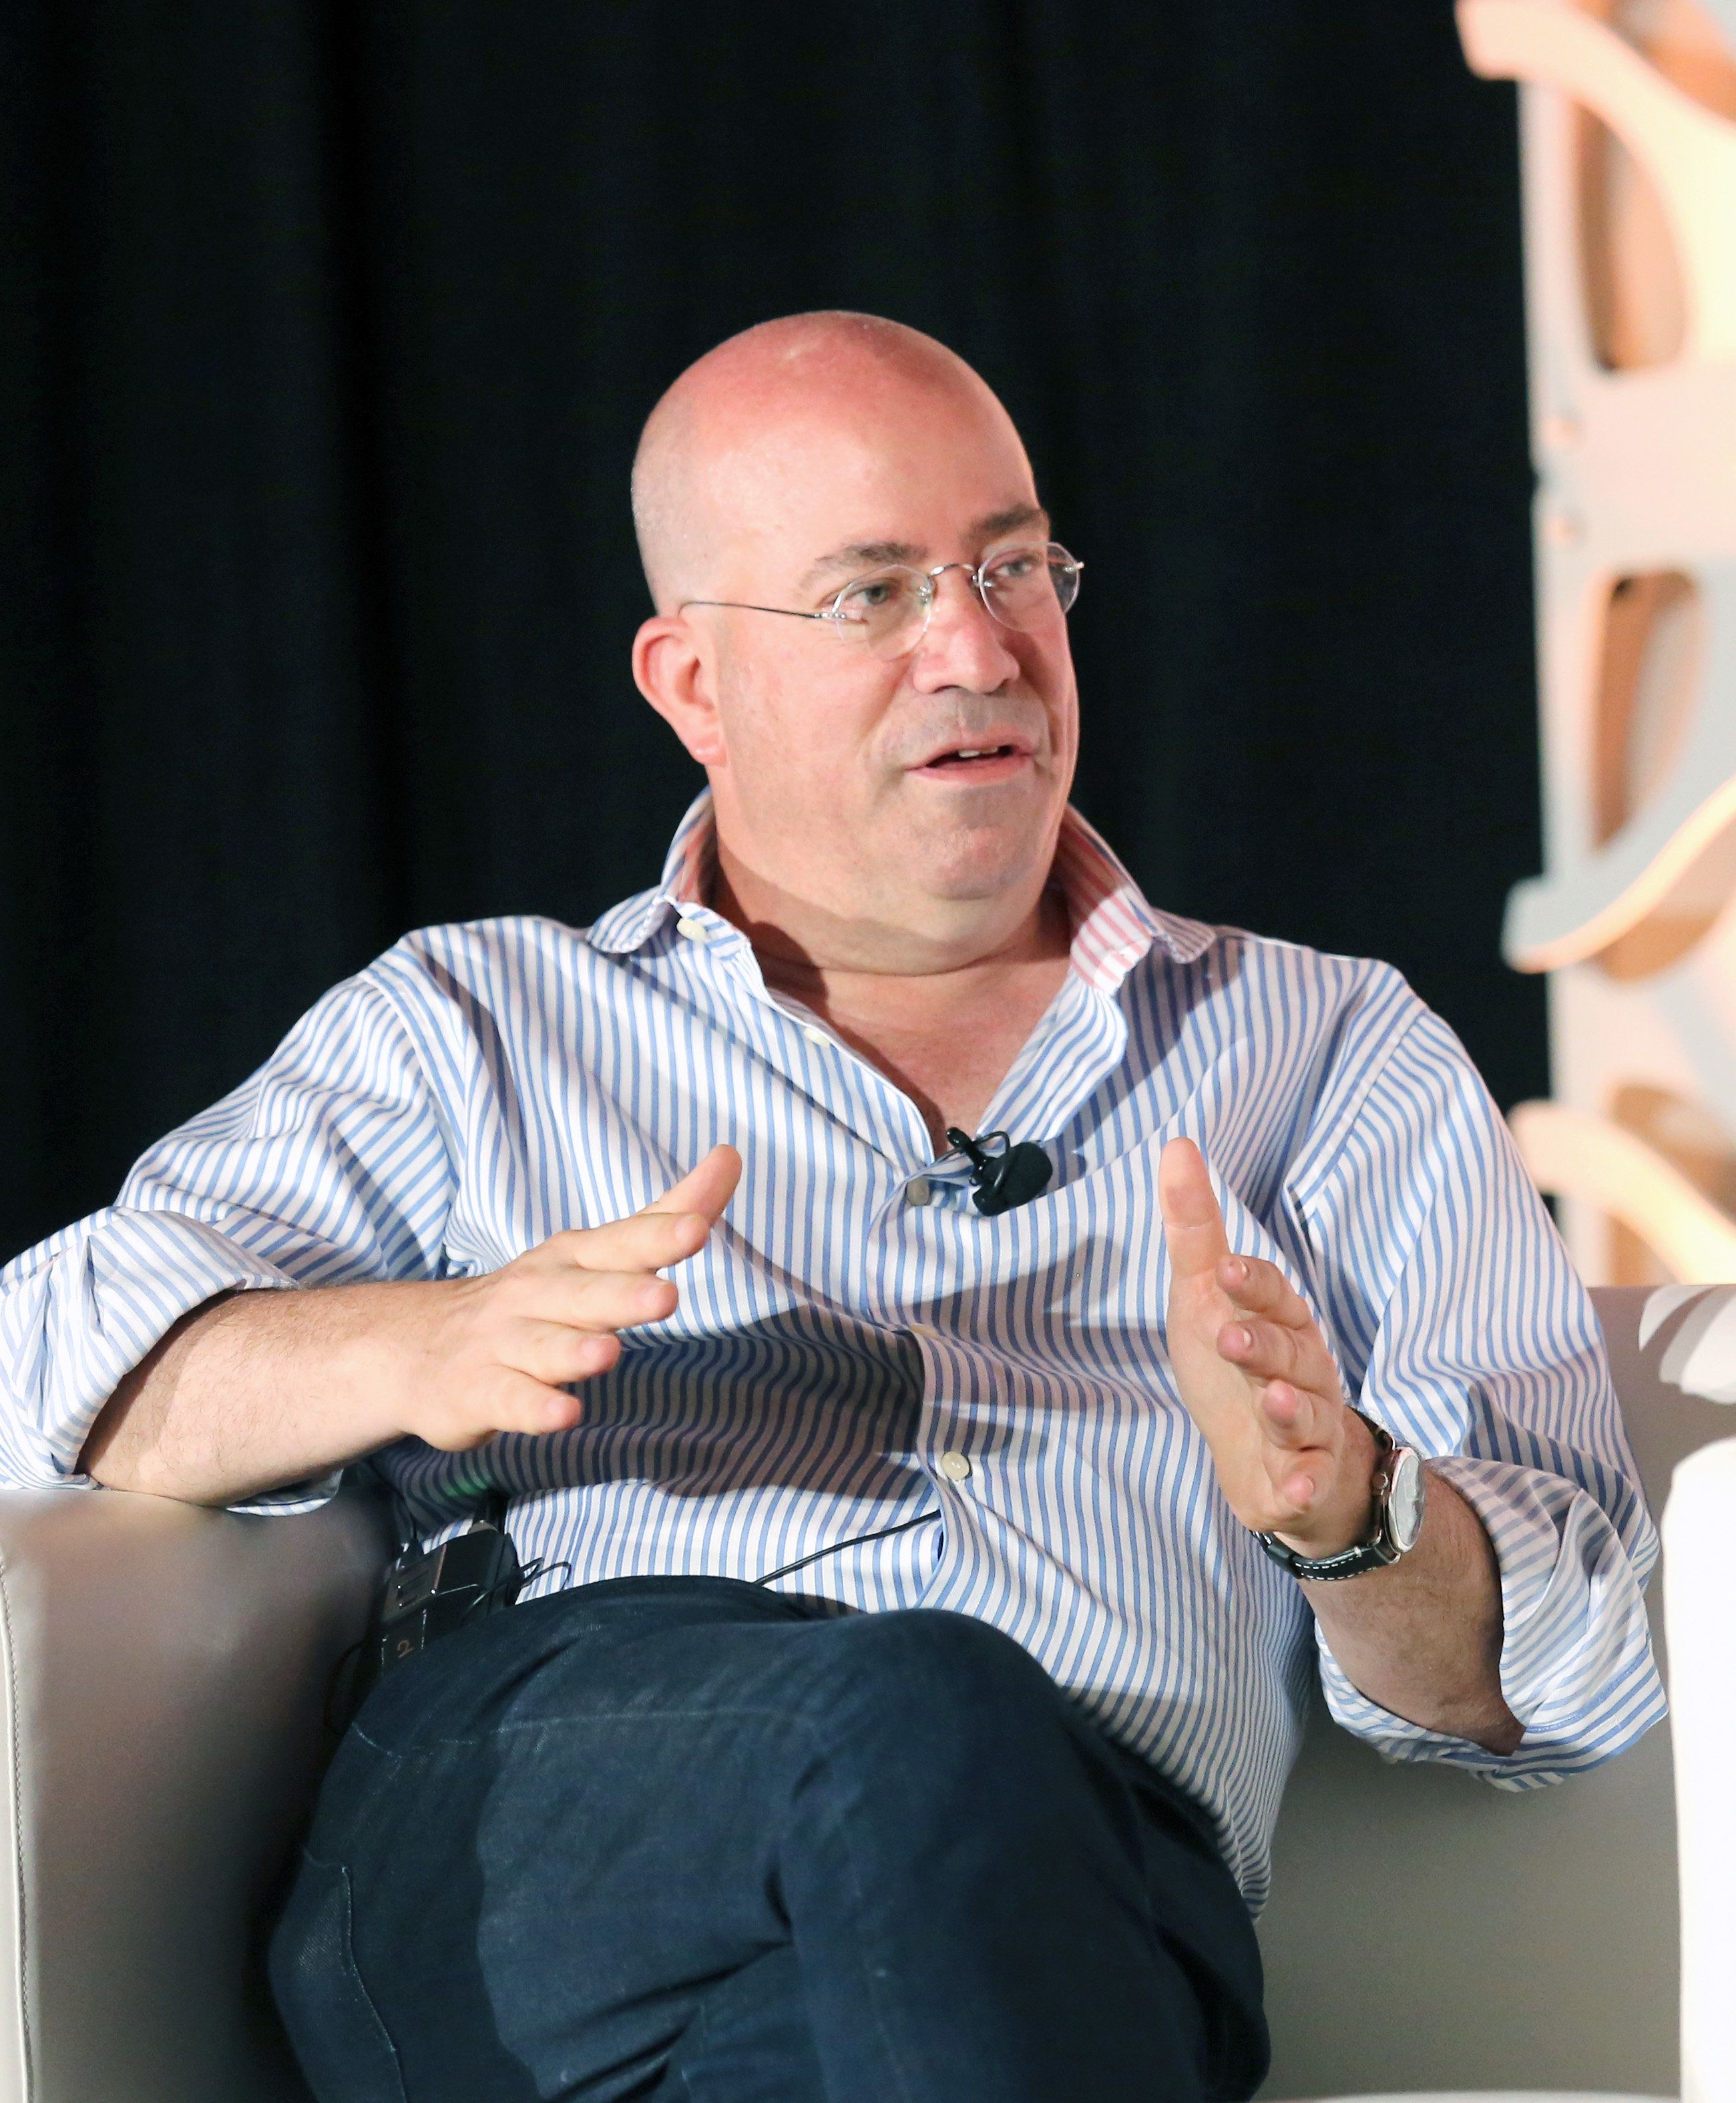 AUSTIN, TX - MARCH 09:  Jeff Zucker speaks onstage at Featured Session Jeff Zucker and Joe Pompeo during the 2019 SXSW Conference and Festivals at Fairmont Austin Hotel on March 9, 2019 in Austin, Texas.  (Photo by Diego Donamaria/Getty Images for SXSW)